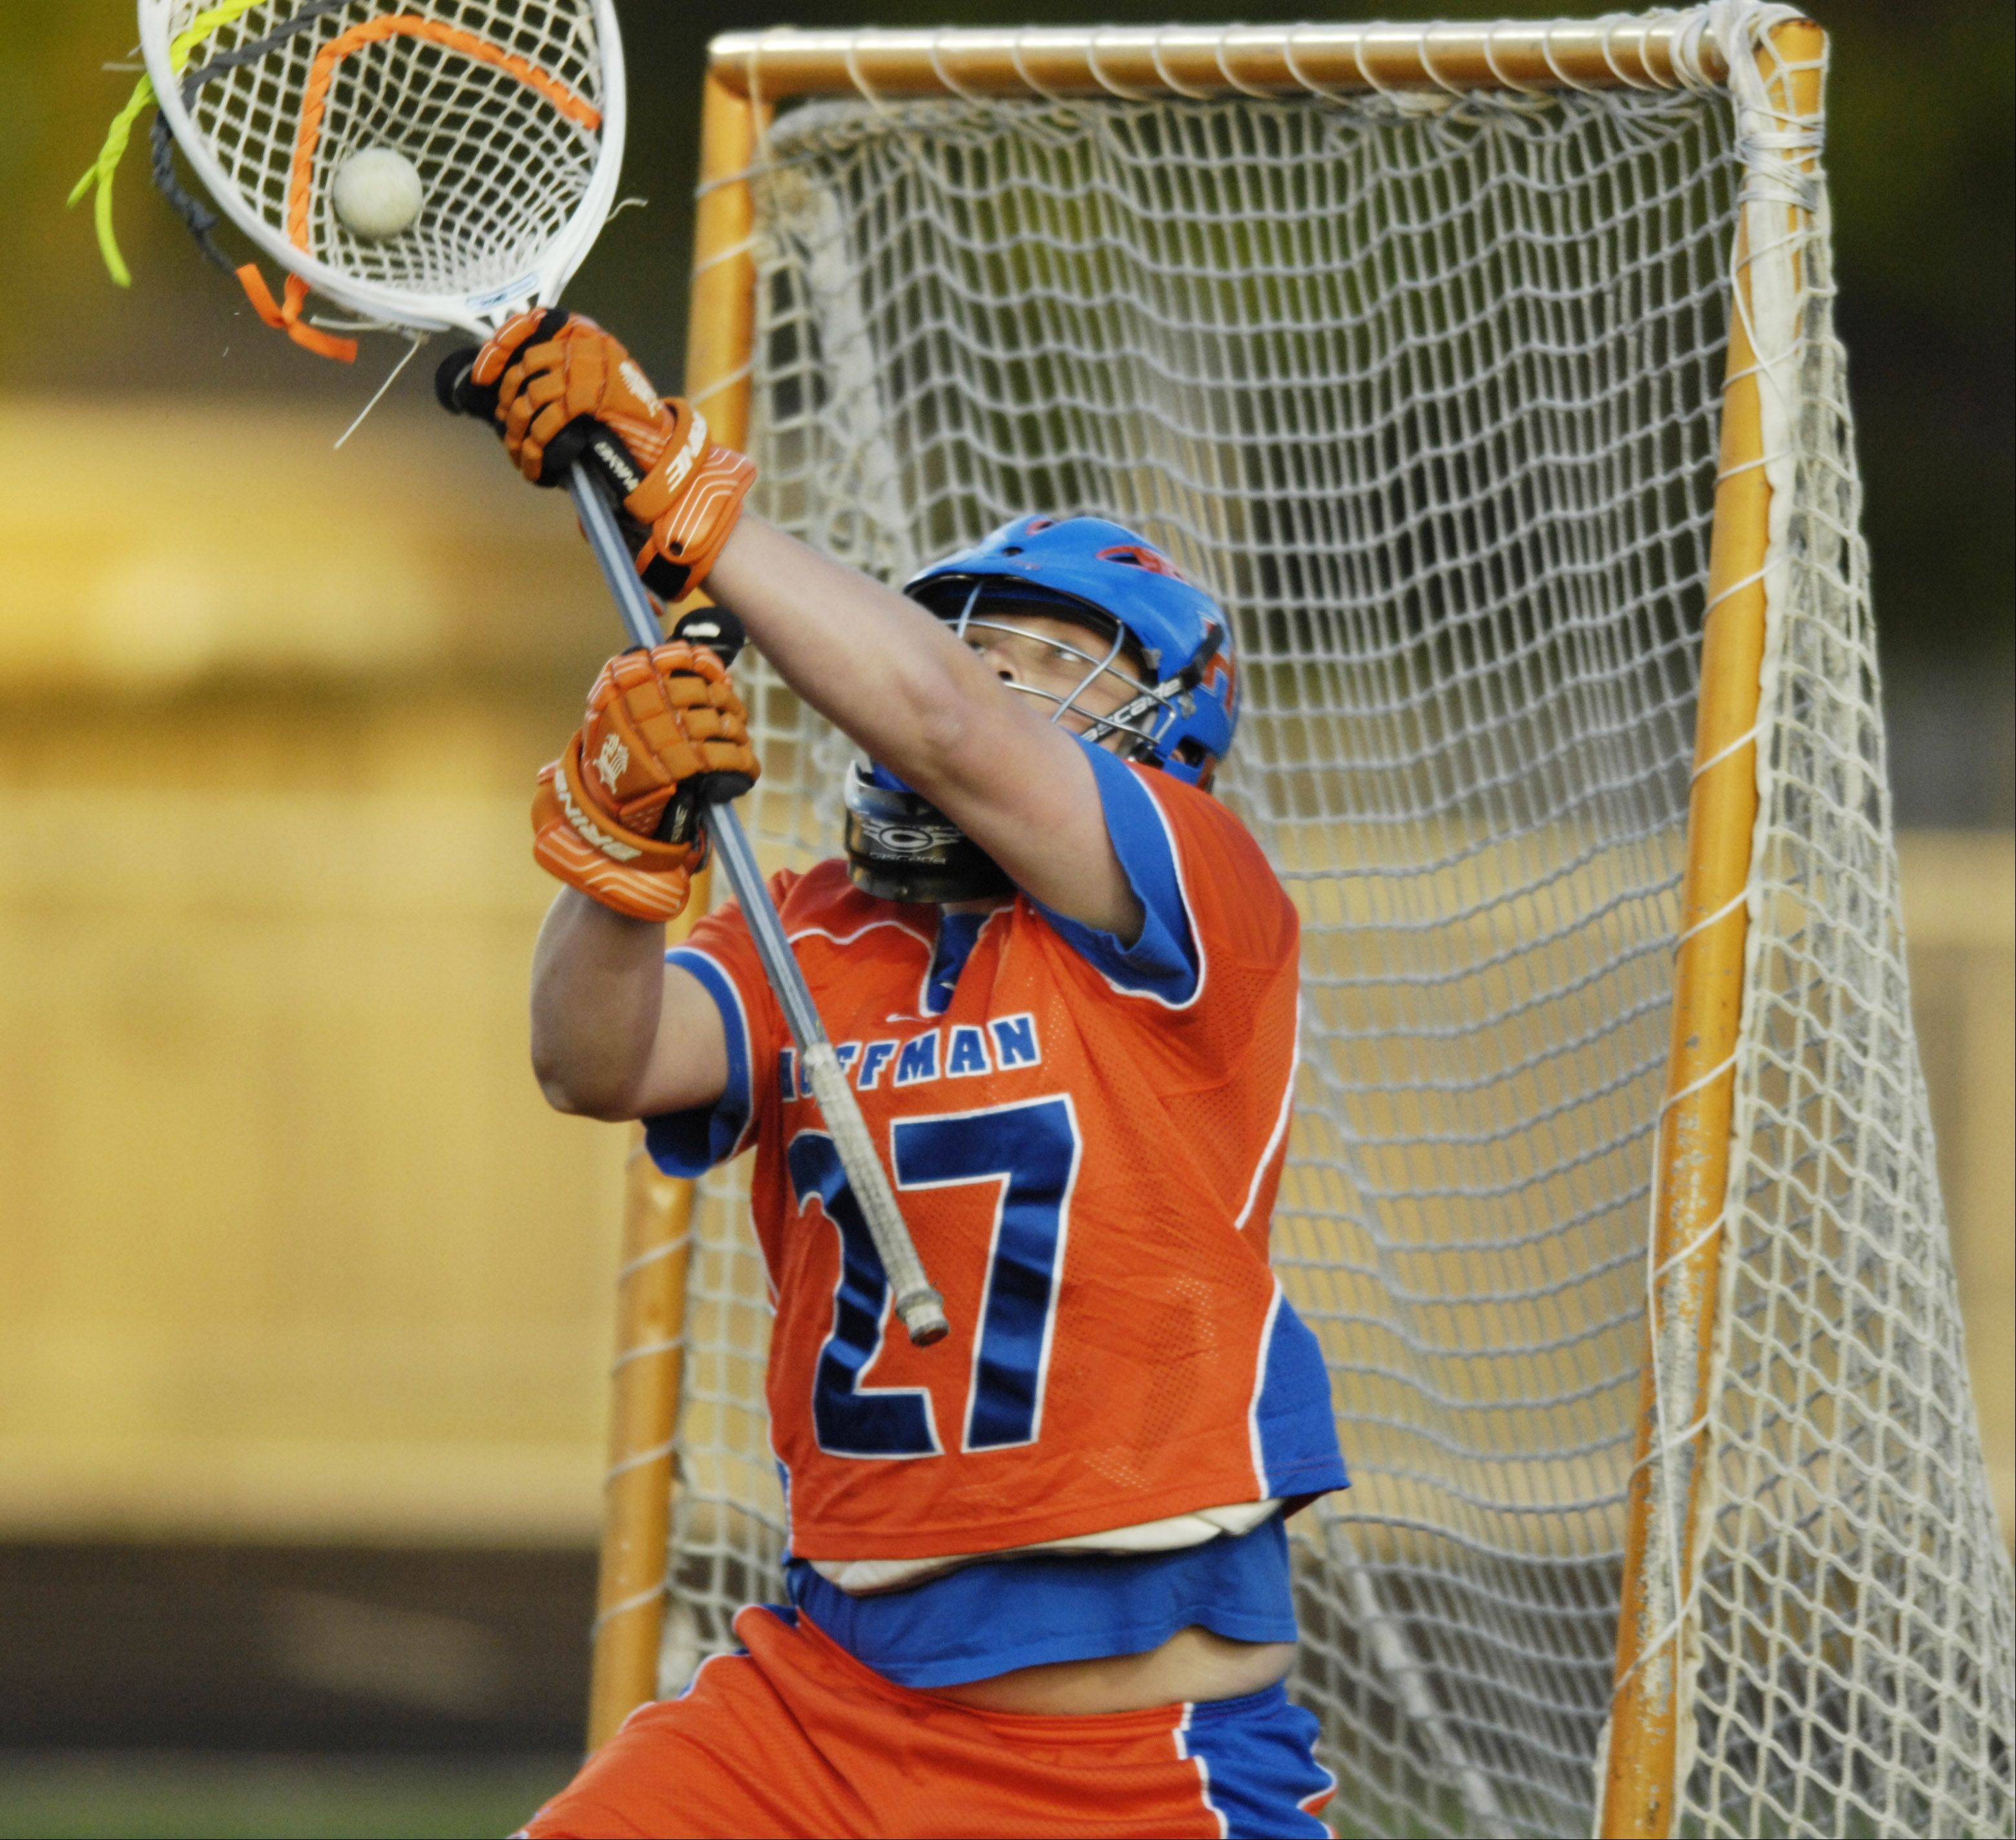 Hoffman Estates goalie Doug Johnson makes a save during last Tuesday's match at Fremd.